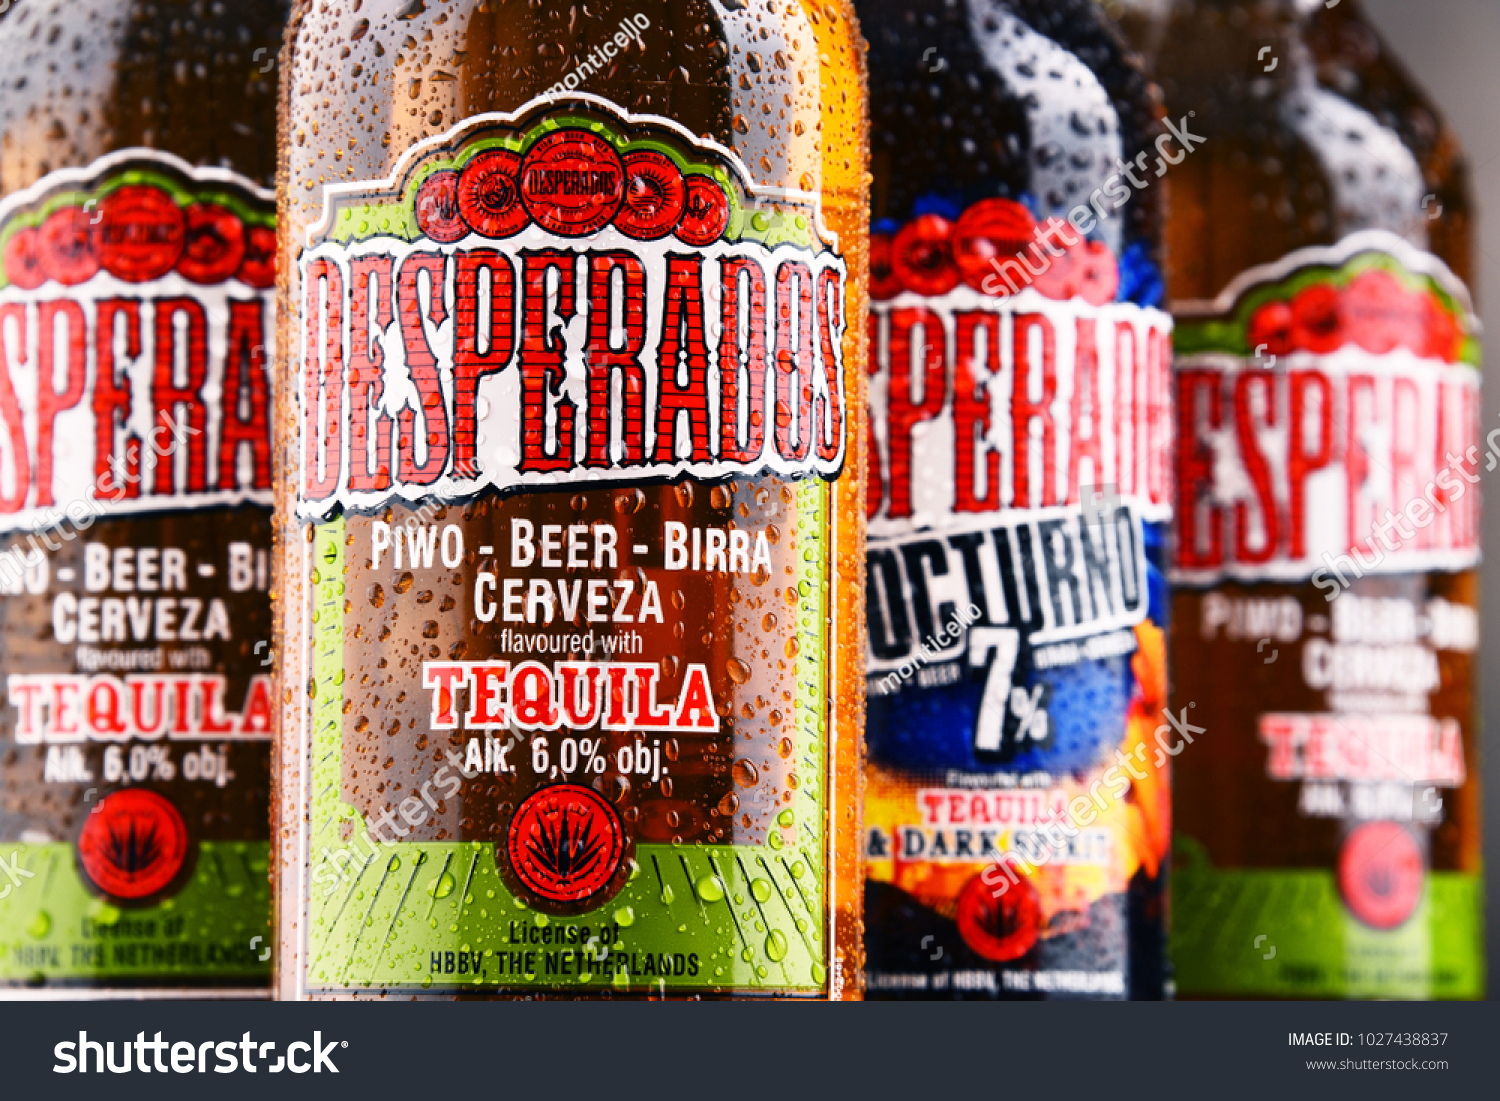 Poznan Poland Feb 14 2018 Desperados Stock Photo Edit Now 1027438837